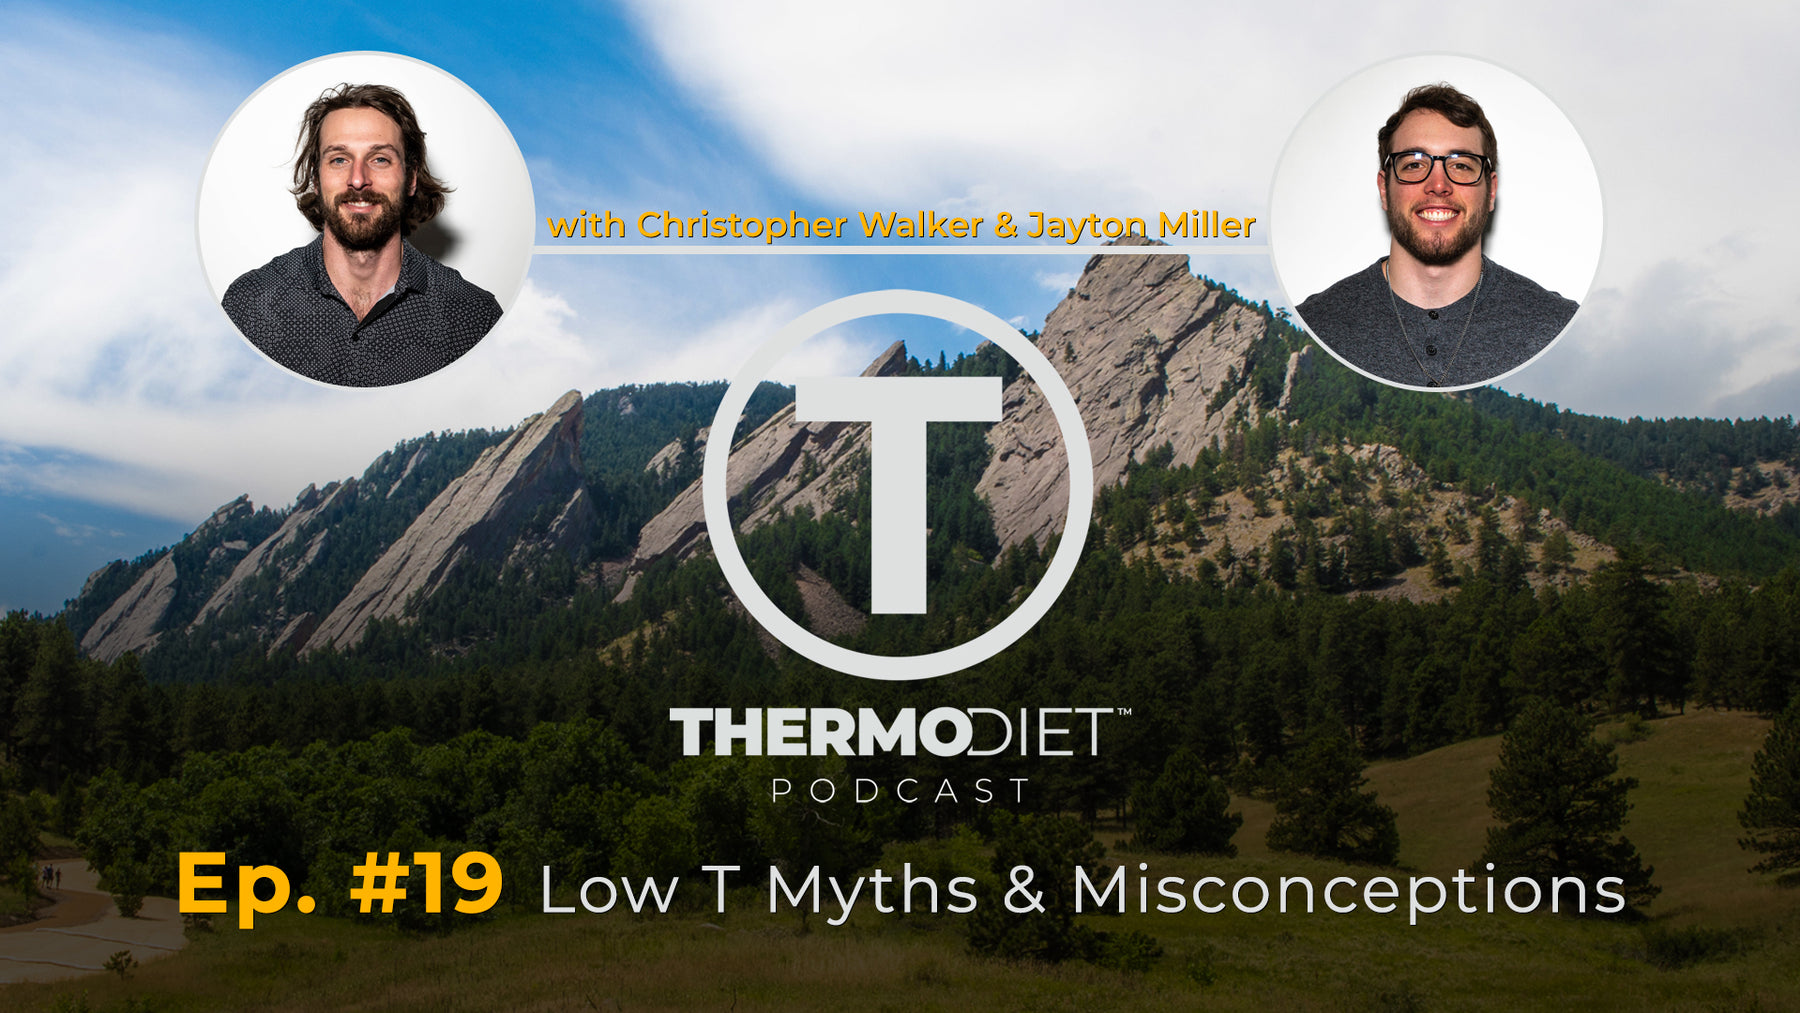 Thermo Diet Podcast Episode 19 - Low T